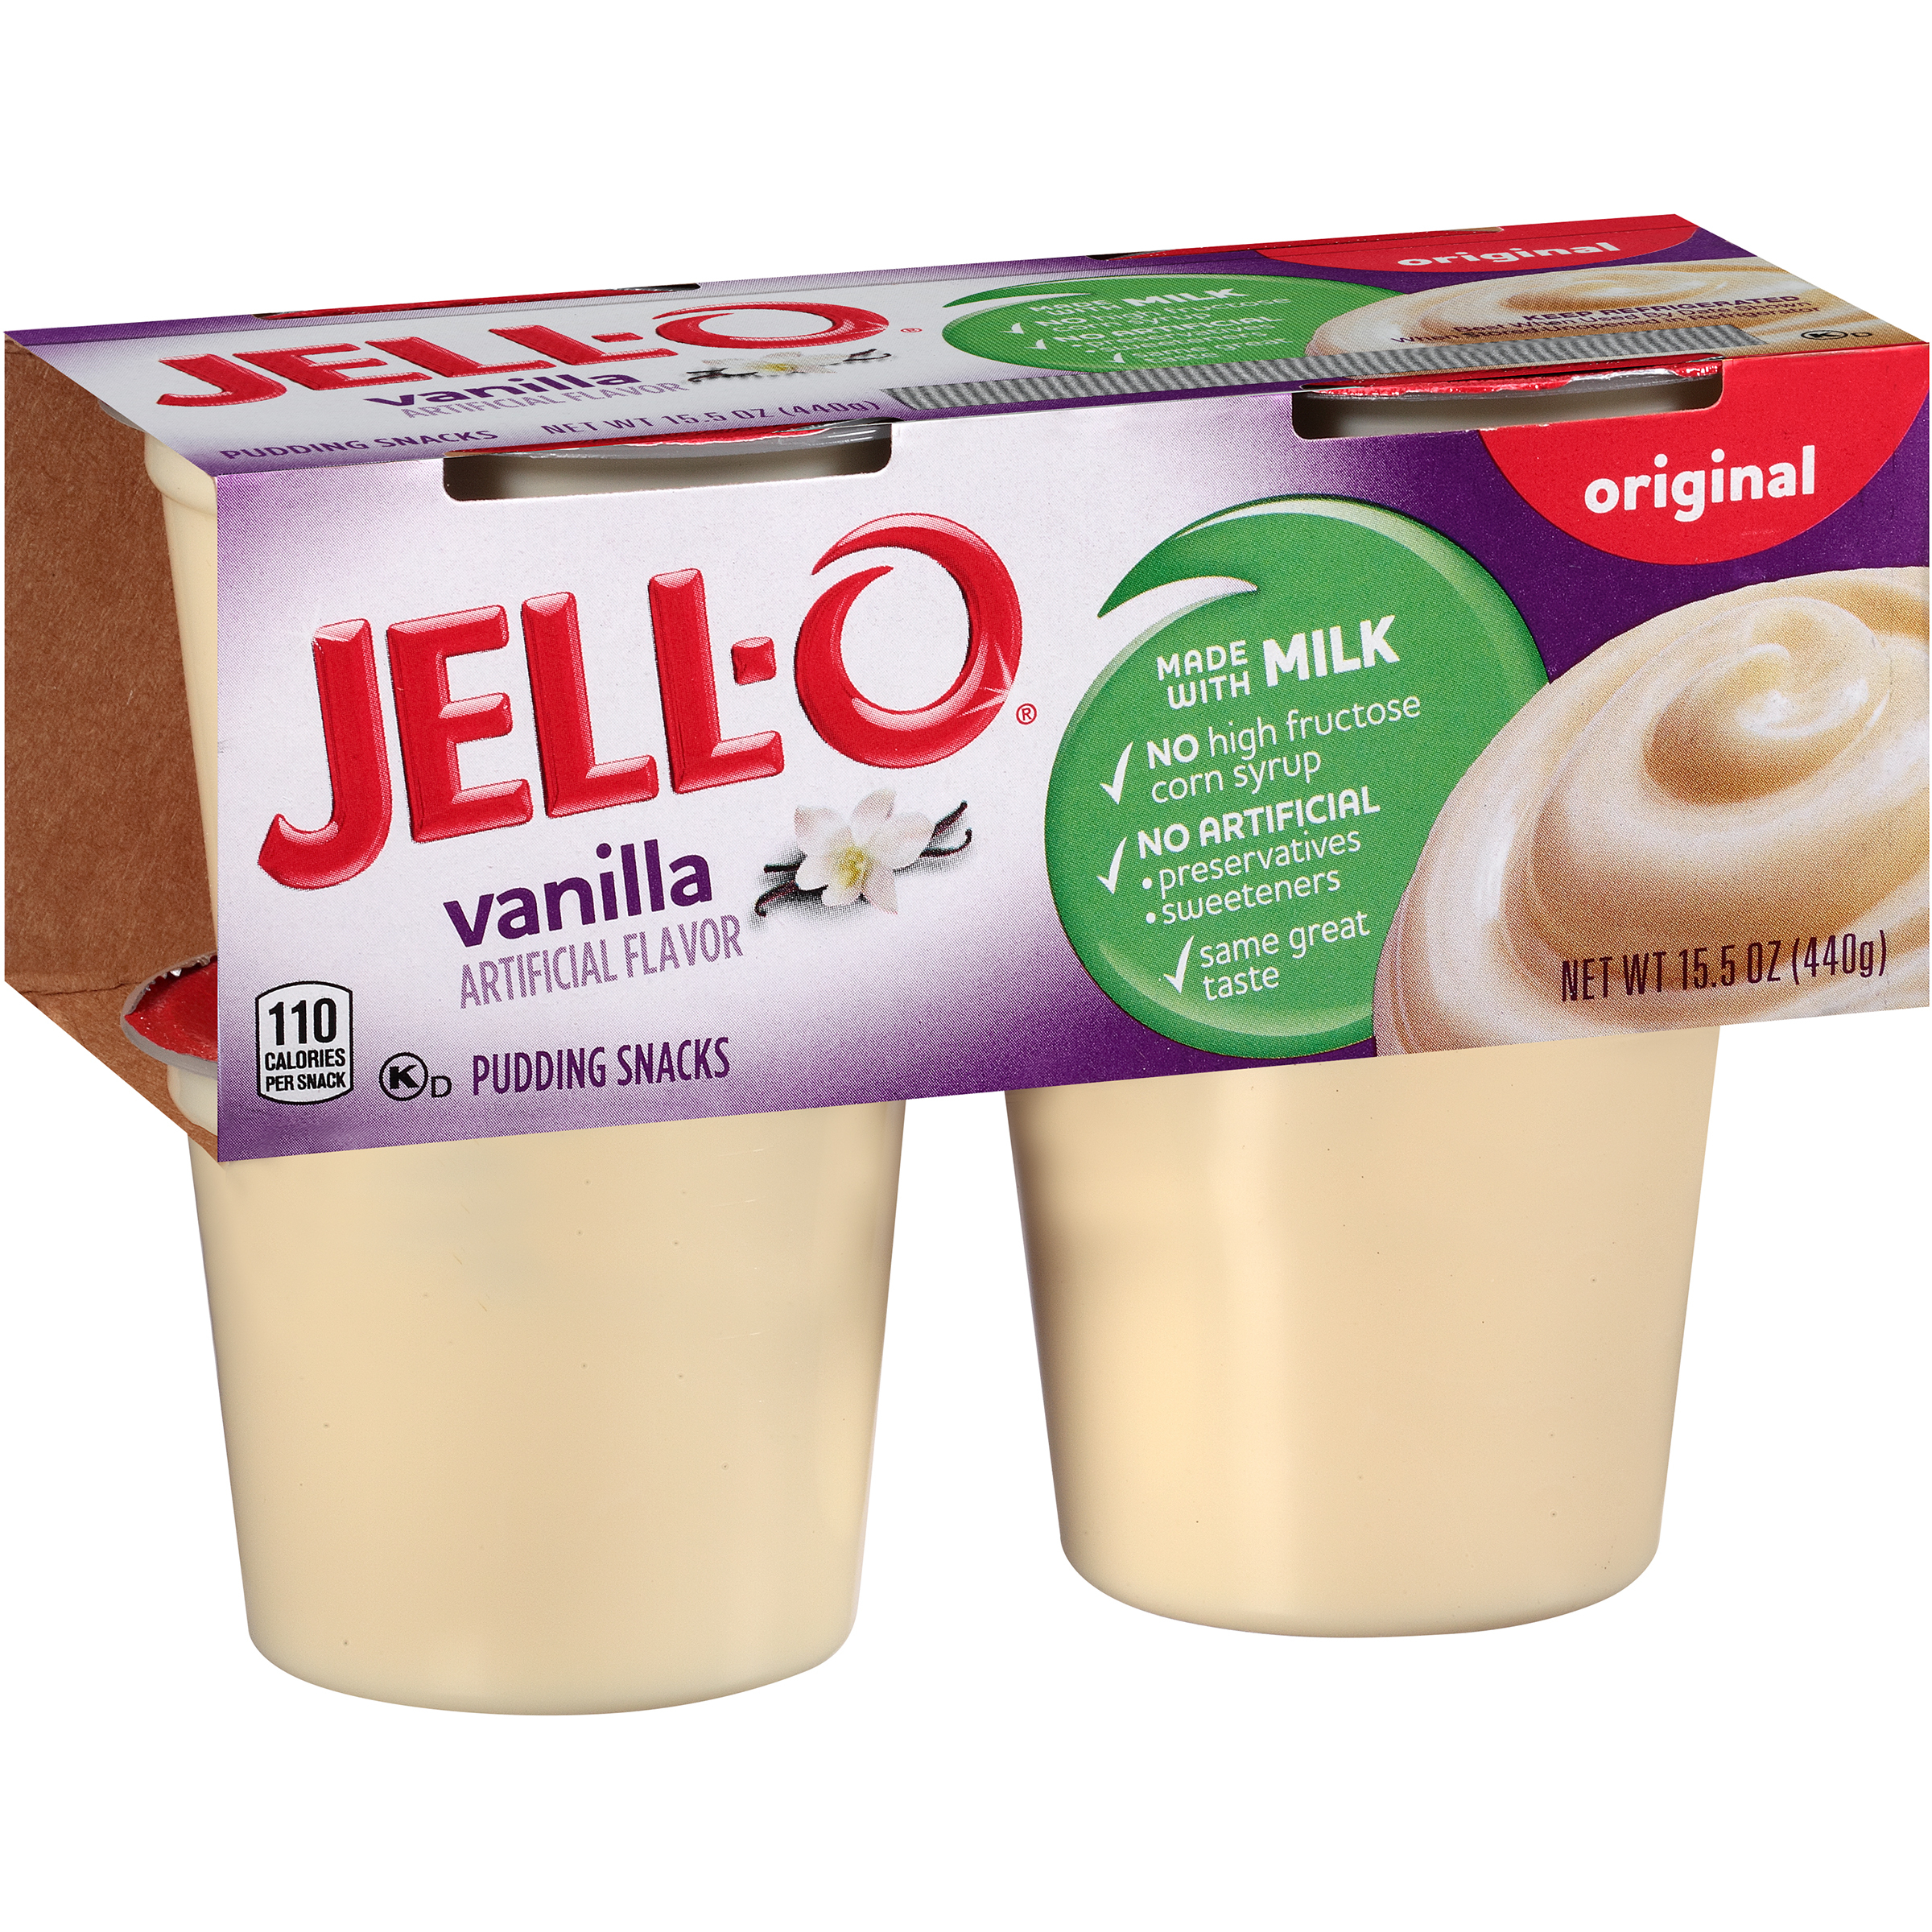 Jell-O Original Vanilla Pudding Snack, 3.875 Oz., 4 Count